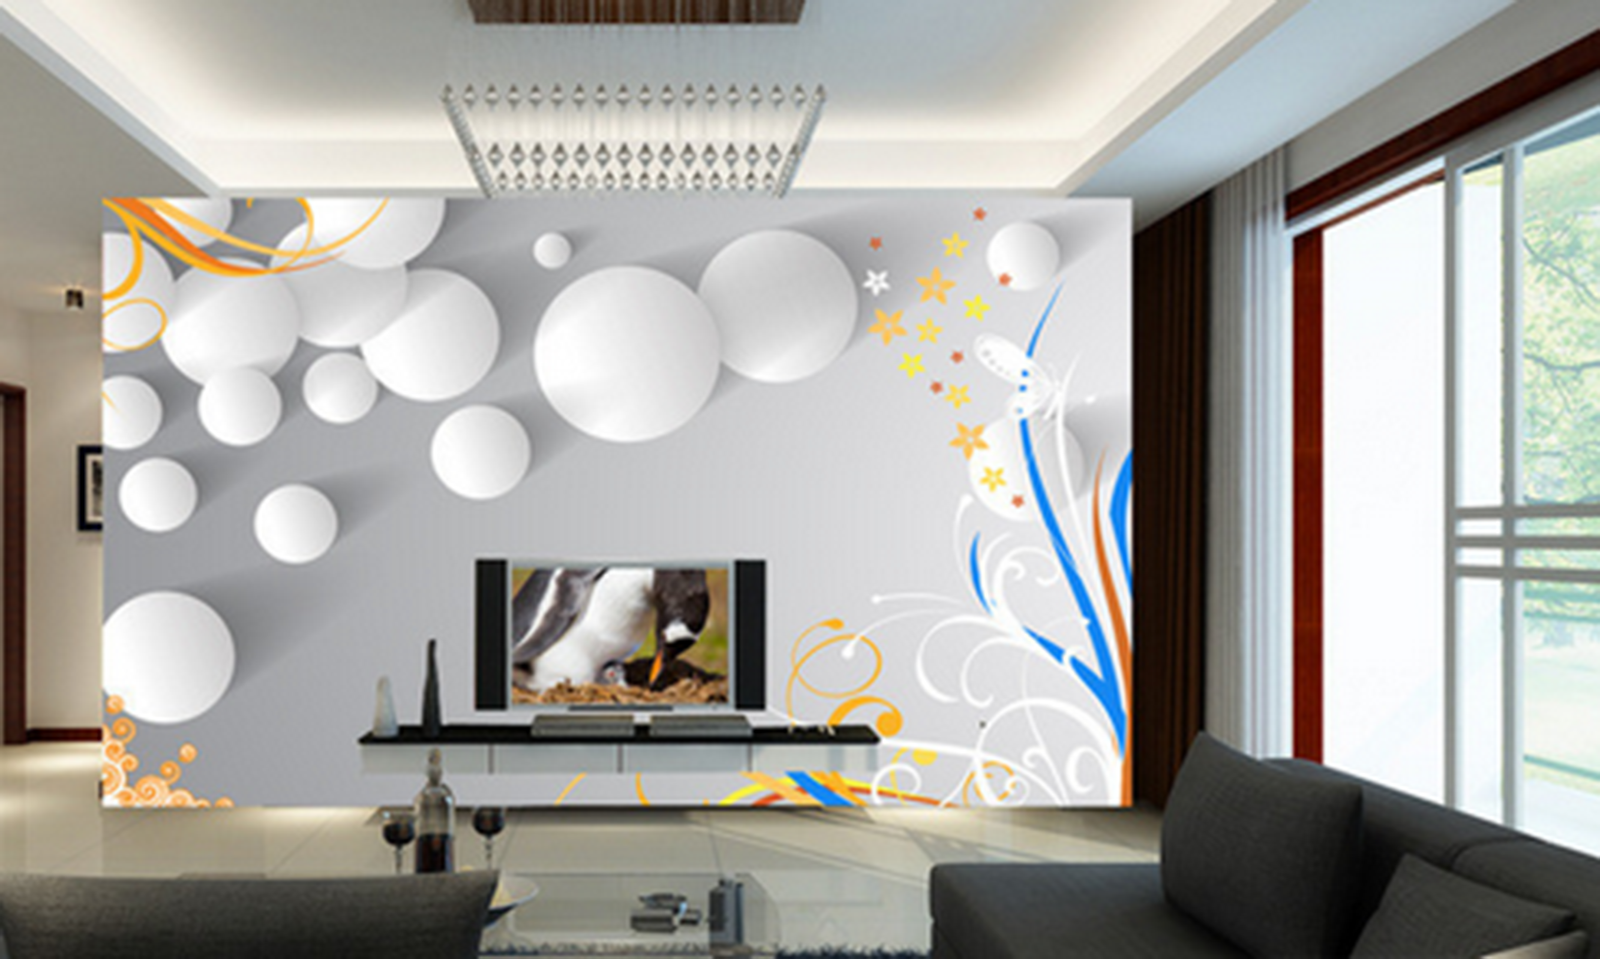 3D Weiß Ball 497 Wallpaper Murals Wall Print Wallpaper Mural AJ WALL AU Kyra